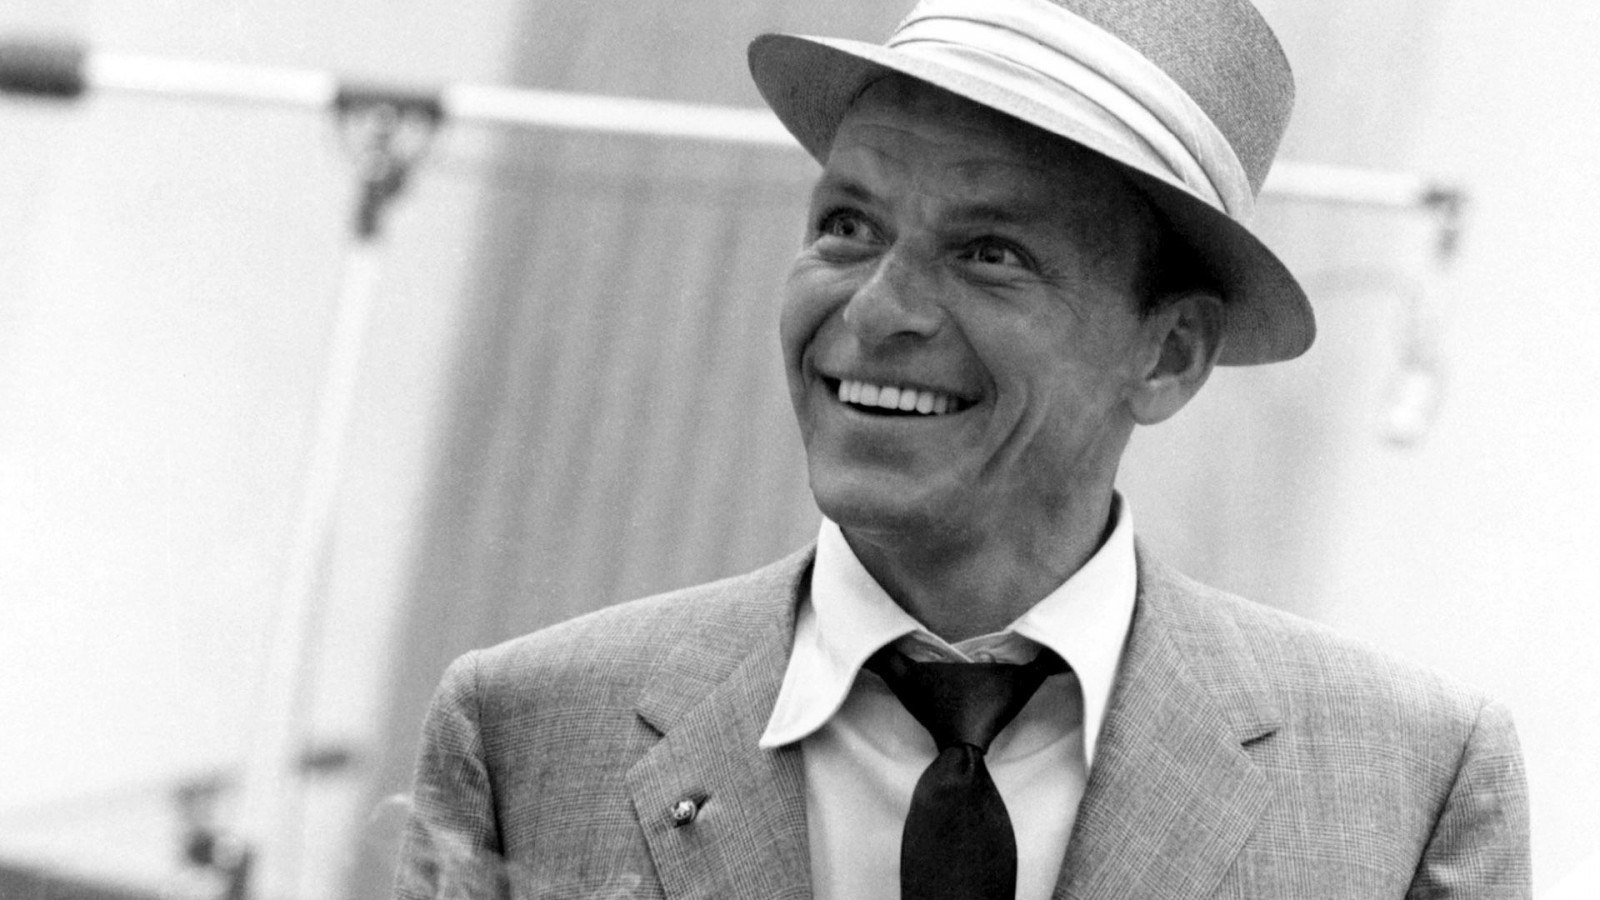 frank_sinatra_smile_suit_tie_hat_hd-wallpaper-11397